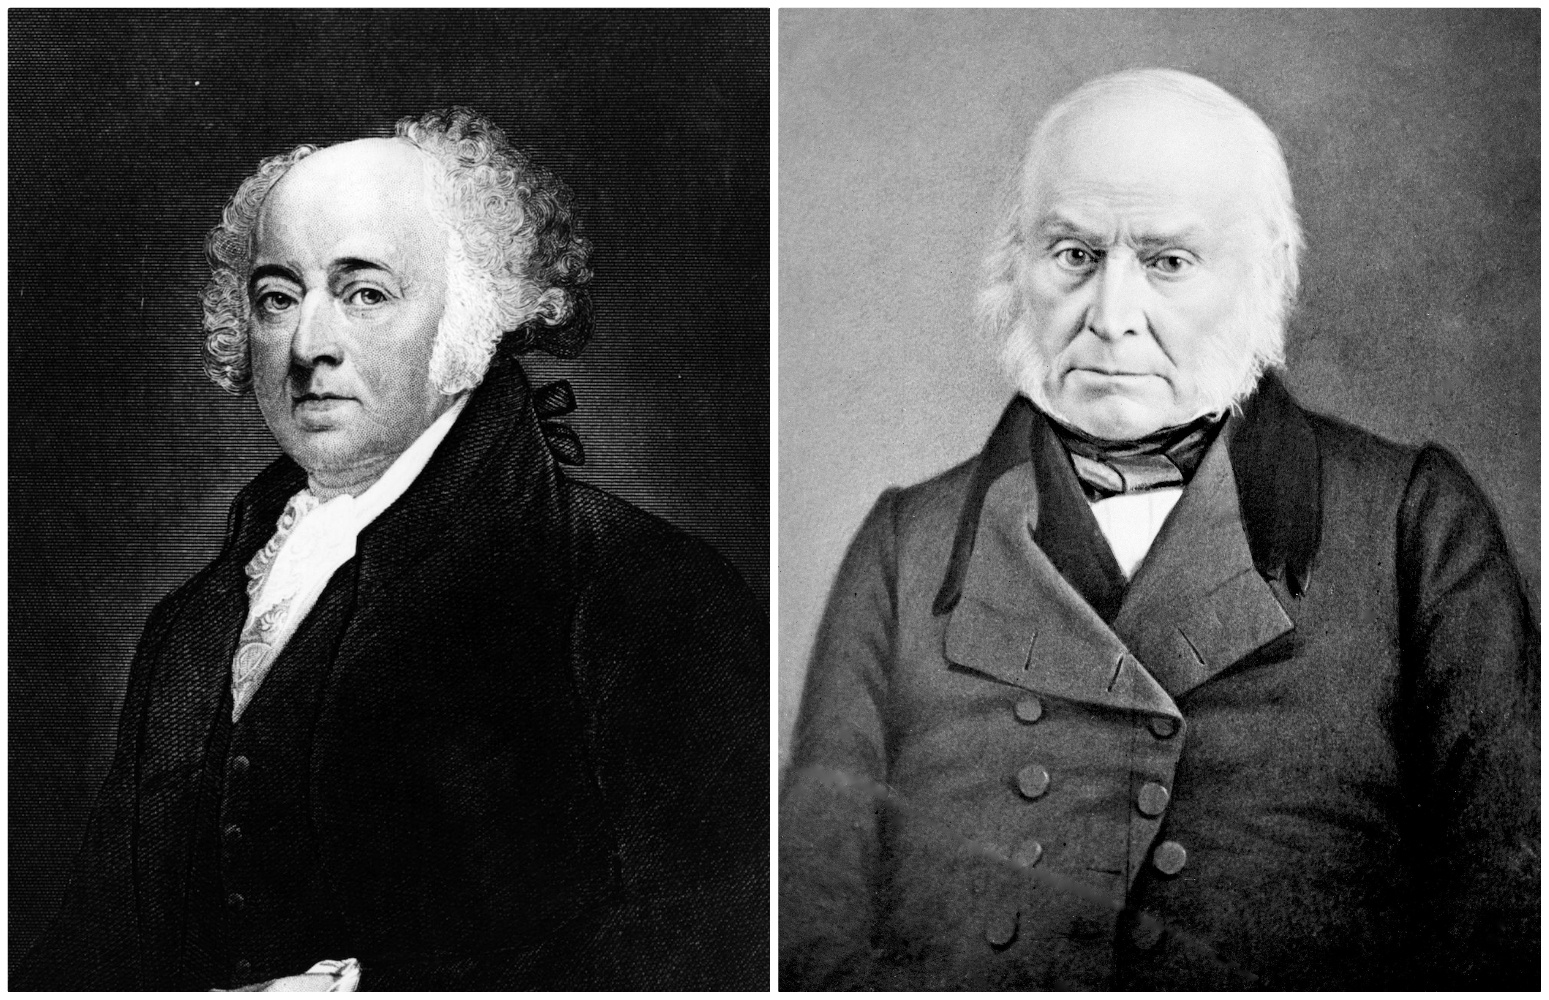 John and John Quincy Adams photo collage